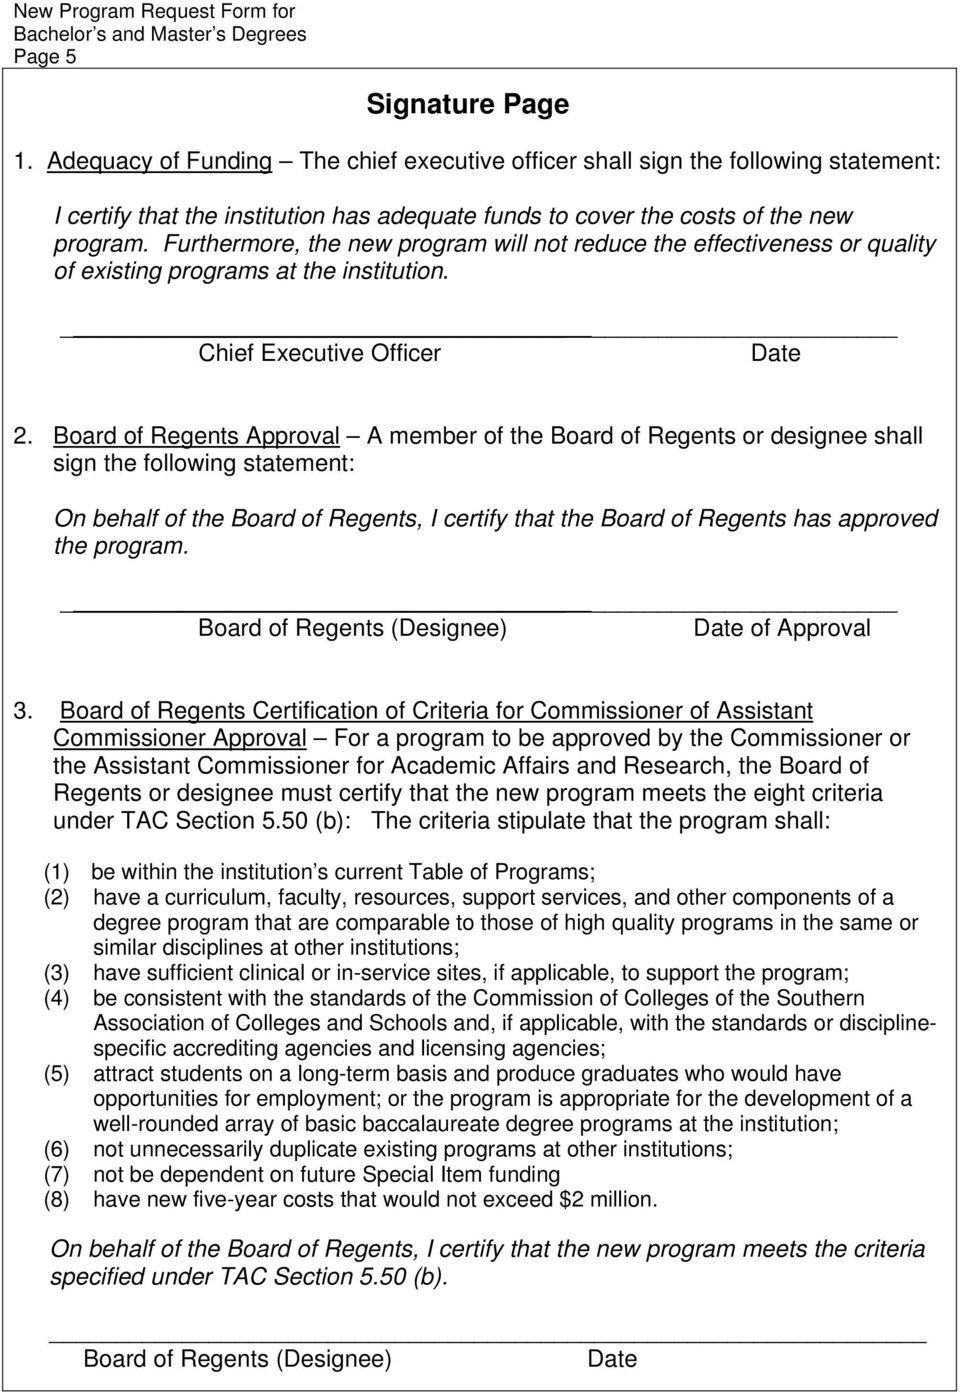 Board of Regents Approval A member of the Board of Regents or designee shall sign the following statement: On behalf of the Board of Regents, I certify that the Board of Regents has approved the